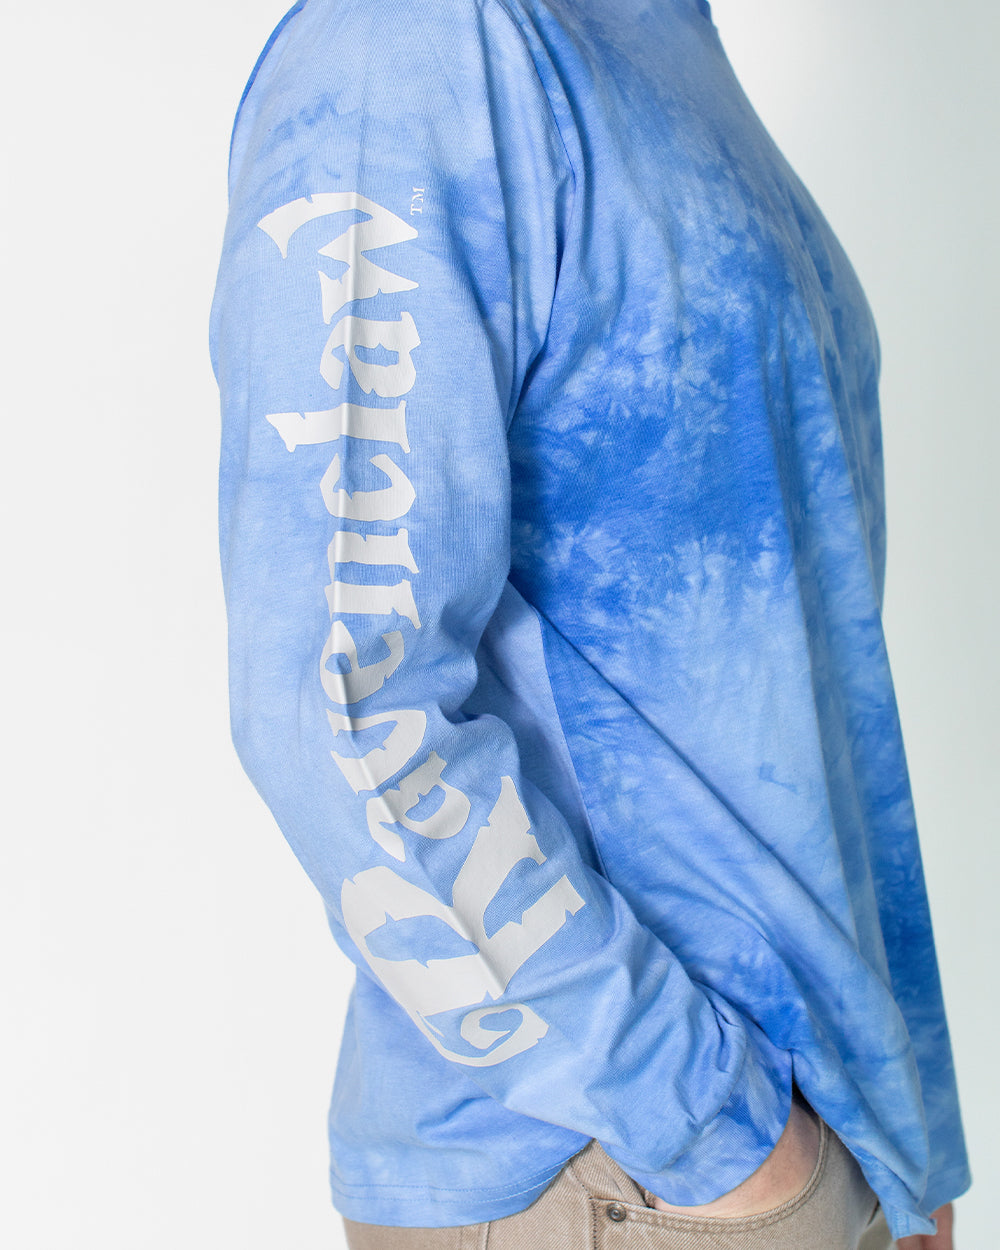 Cakeworthy Harry Potter Ravenclaw House Unisex Flannel - The Pink a la Mode - Cakeworthy - The Pink a la Mode